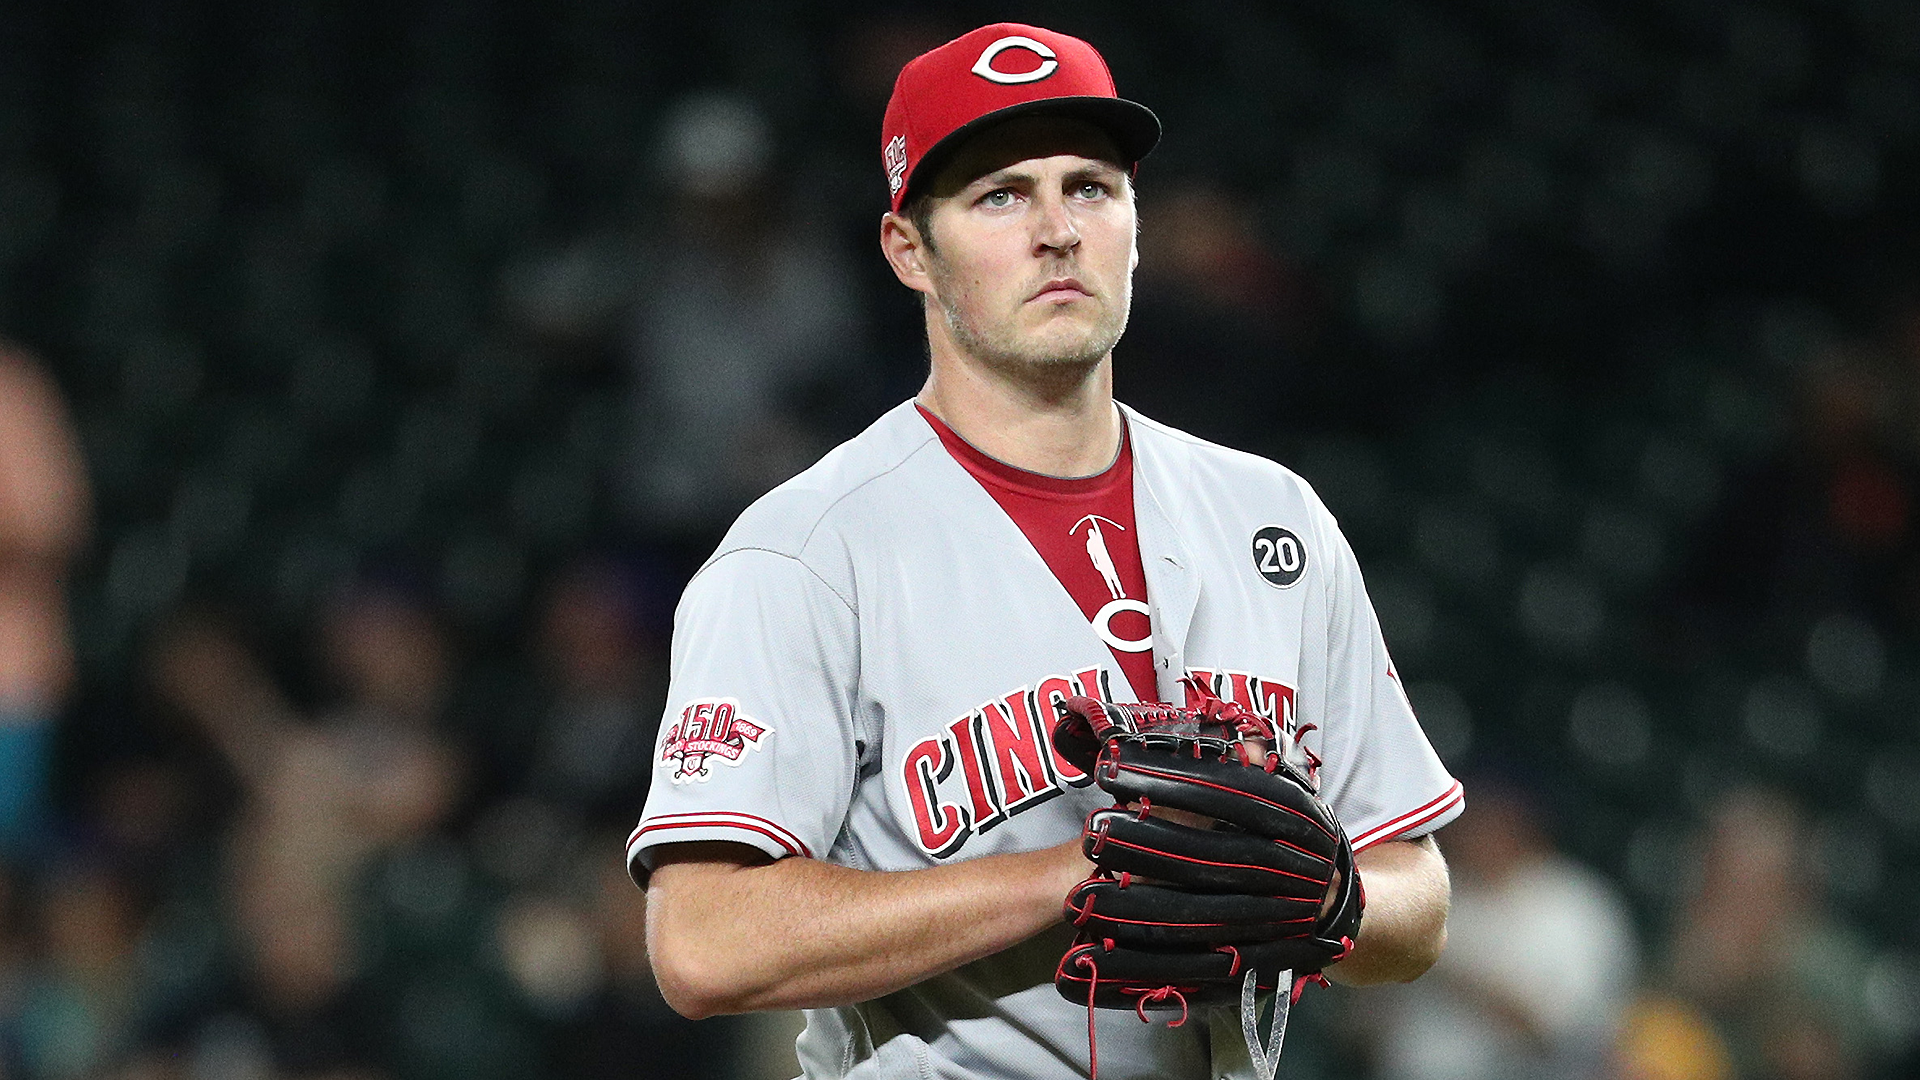 Trevor Bauer explains what 70 percent of MLB pitchers are doing that's 'a bigger advantage than steroids'